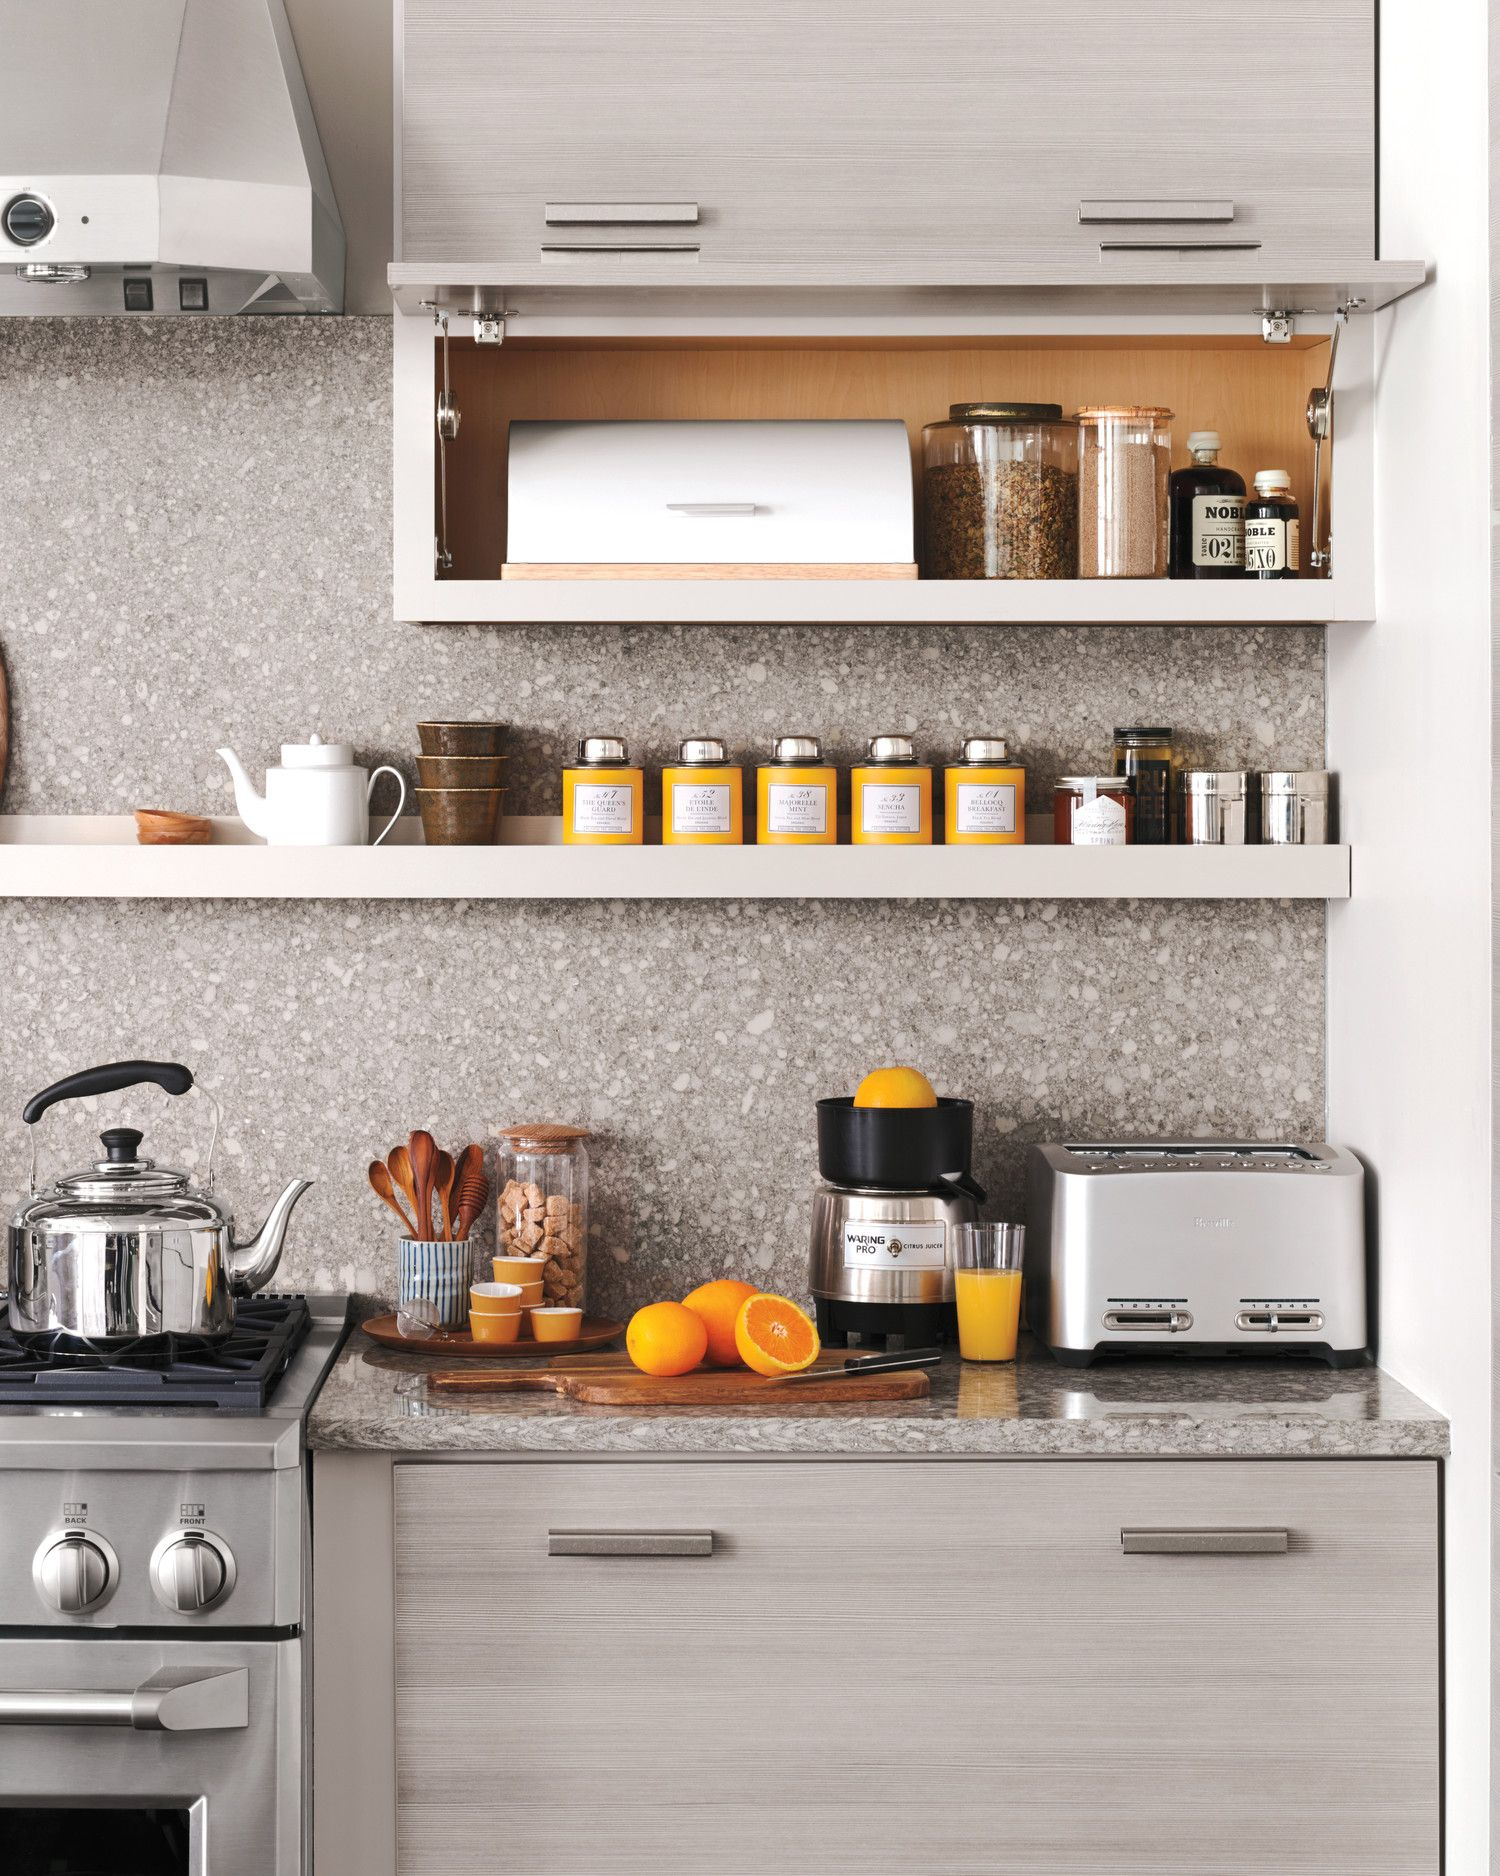 Kitchen Remodel Tips to Live By: The Art of Functional Design #kitchencollection